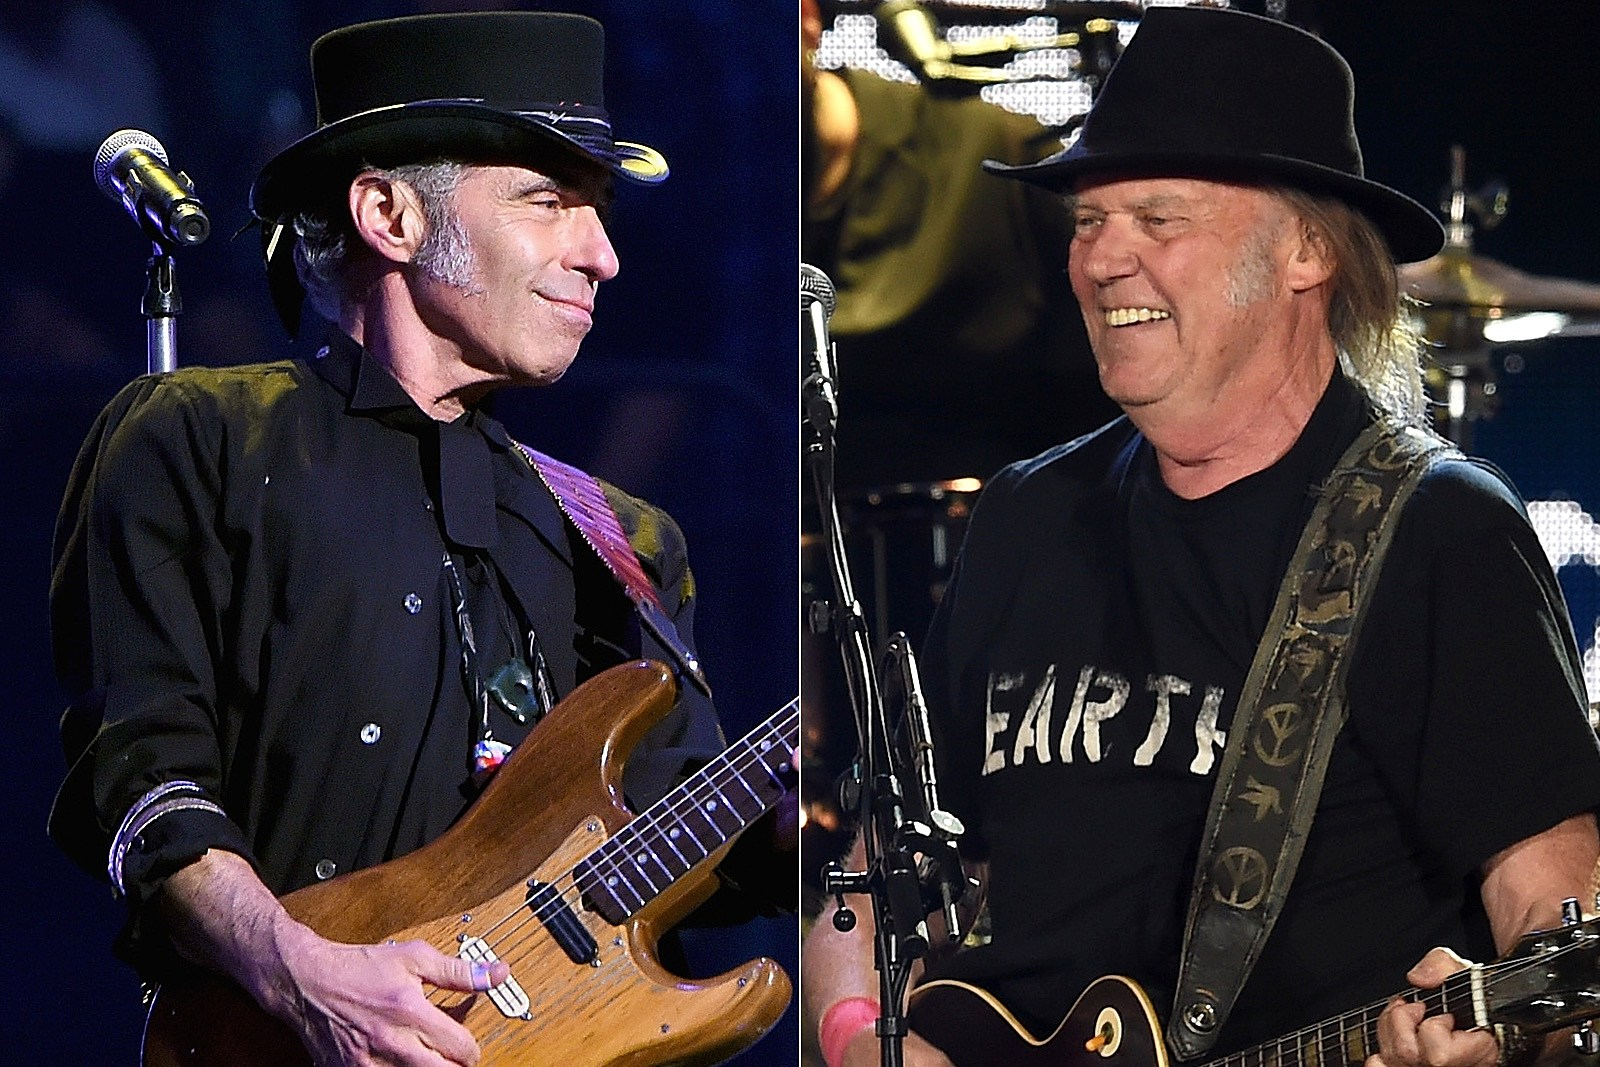 Lofgren In, Poncho Out, for Neil Young's Next Crazy Horse Lineup